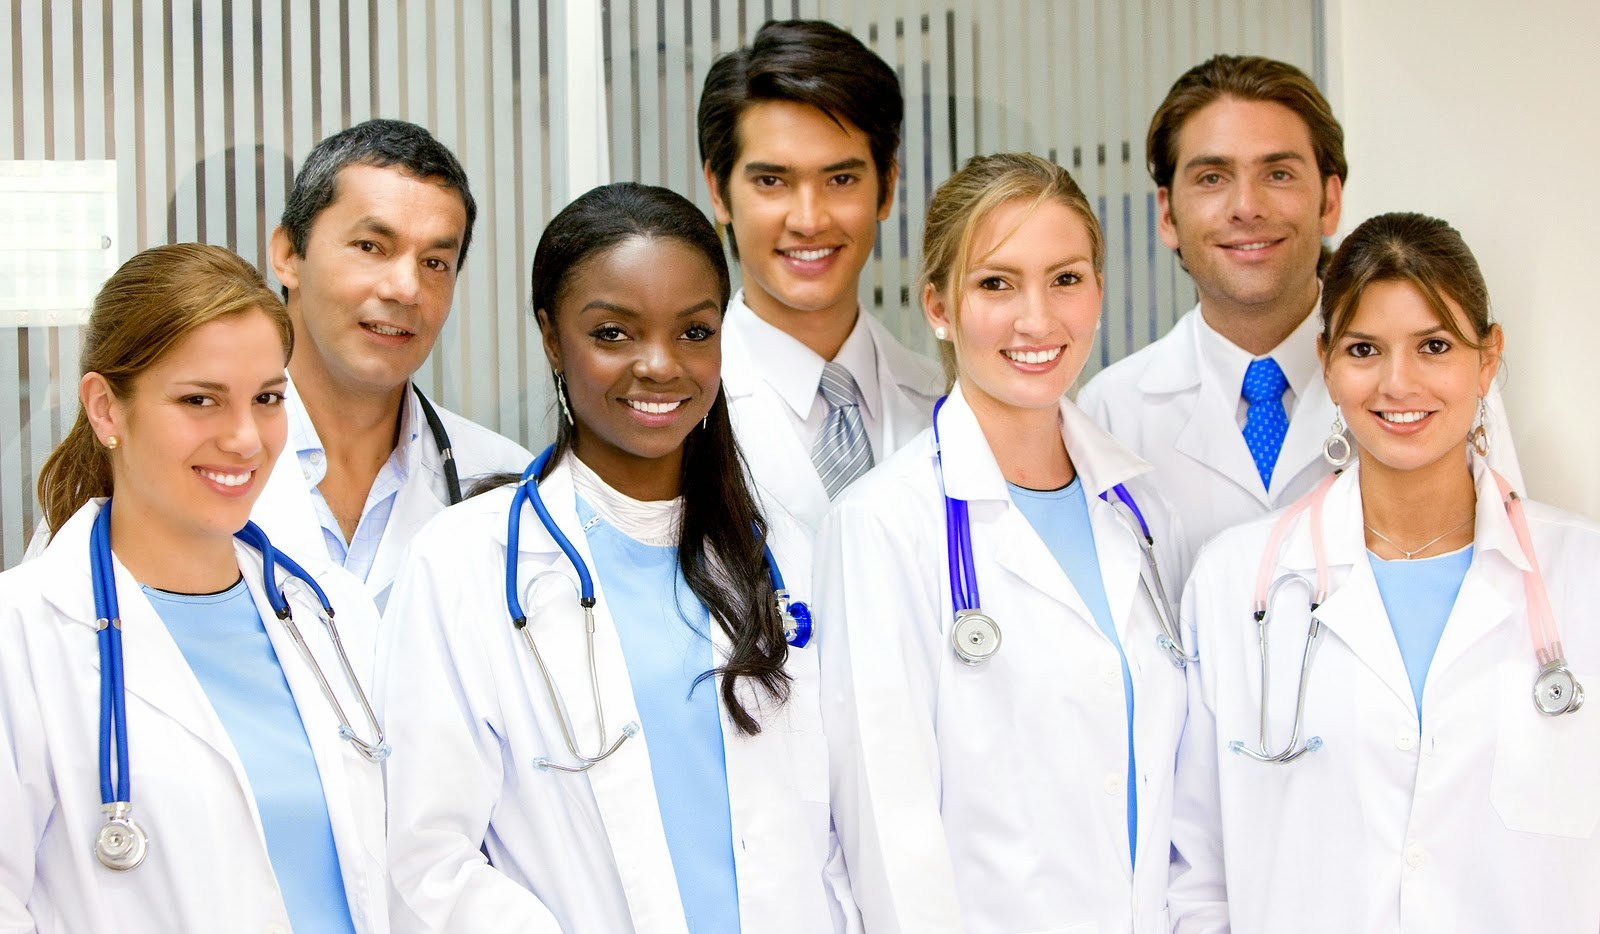 Medical Scholarships for Students 2021 Application Update